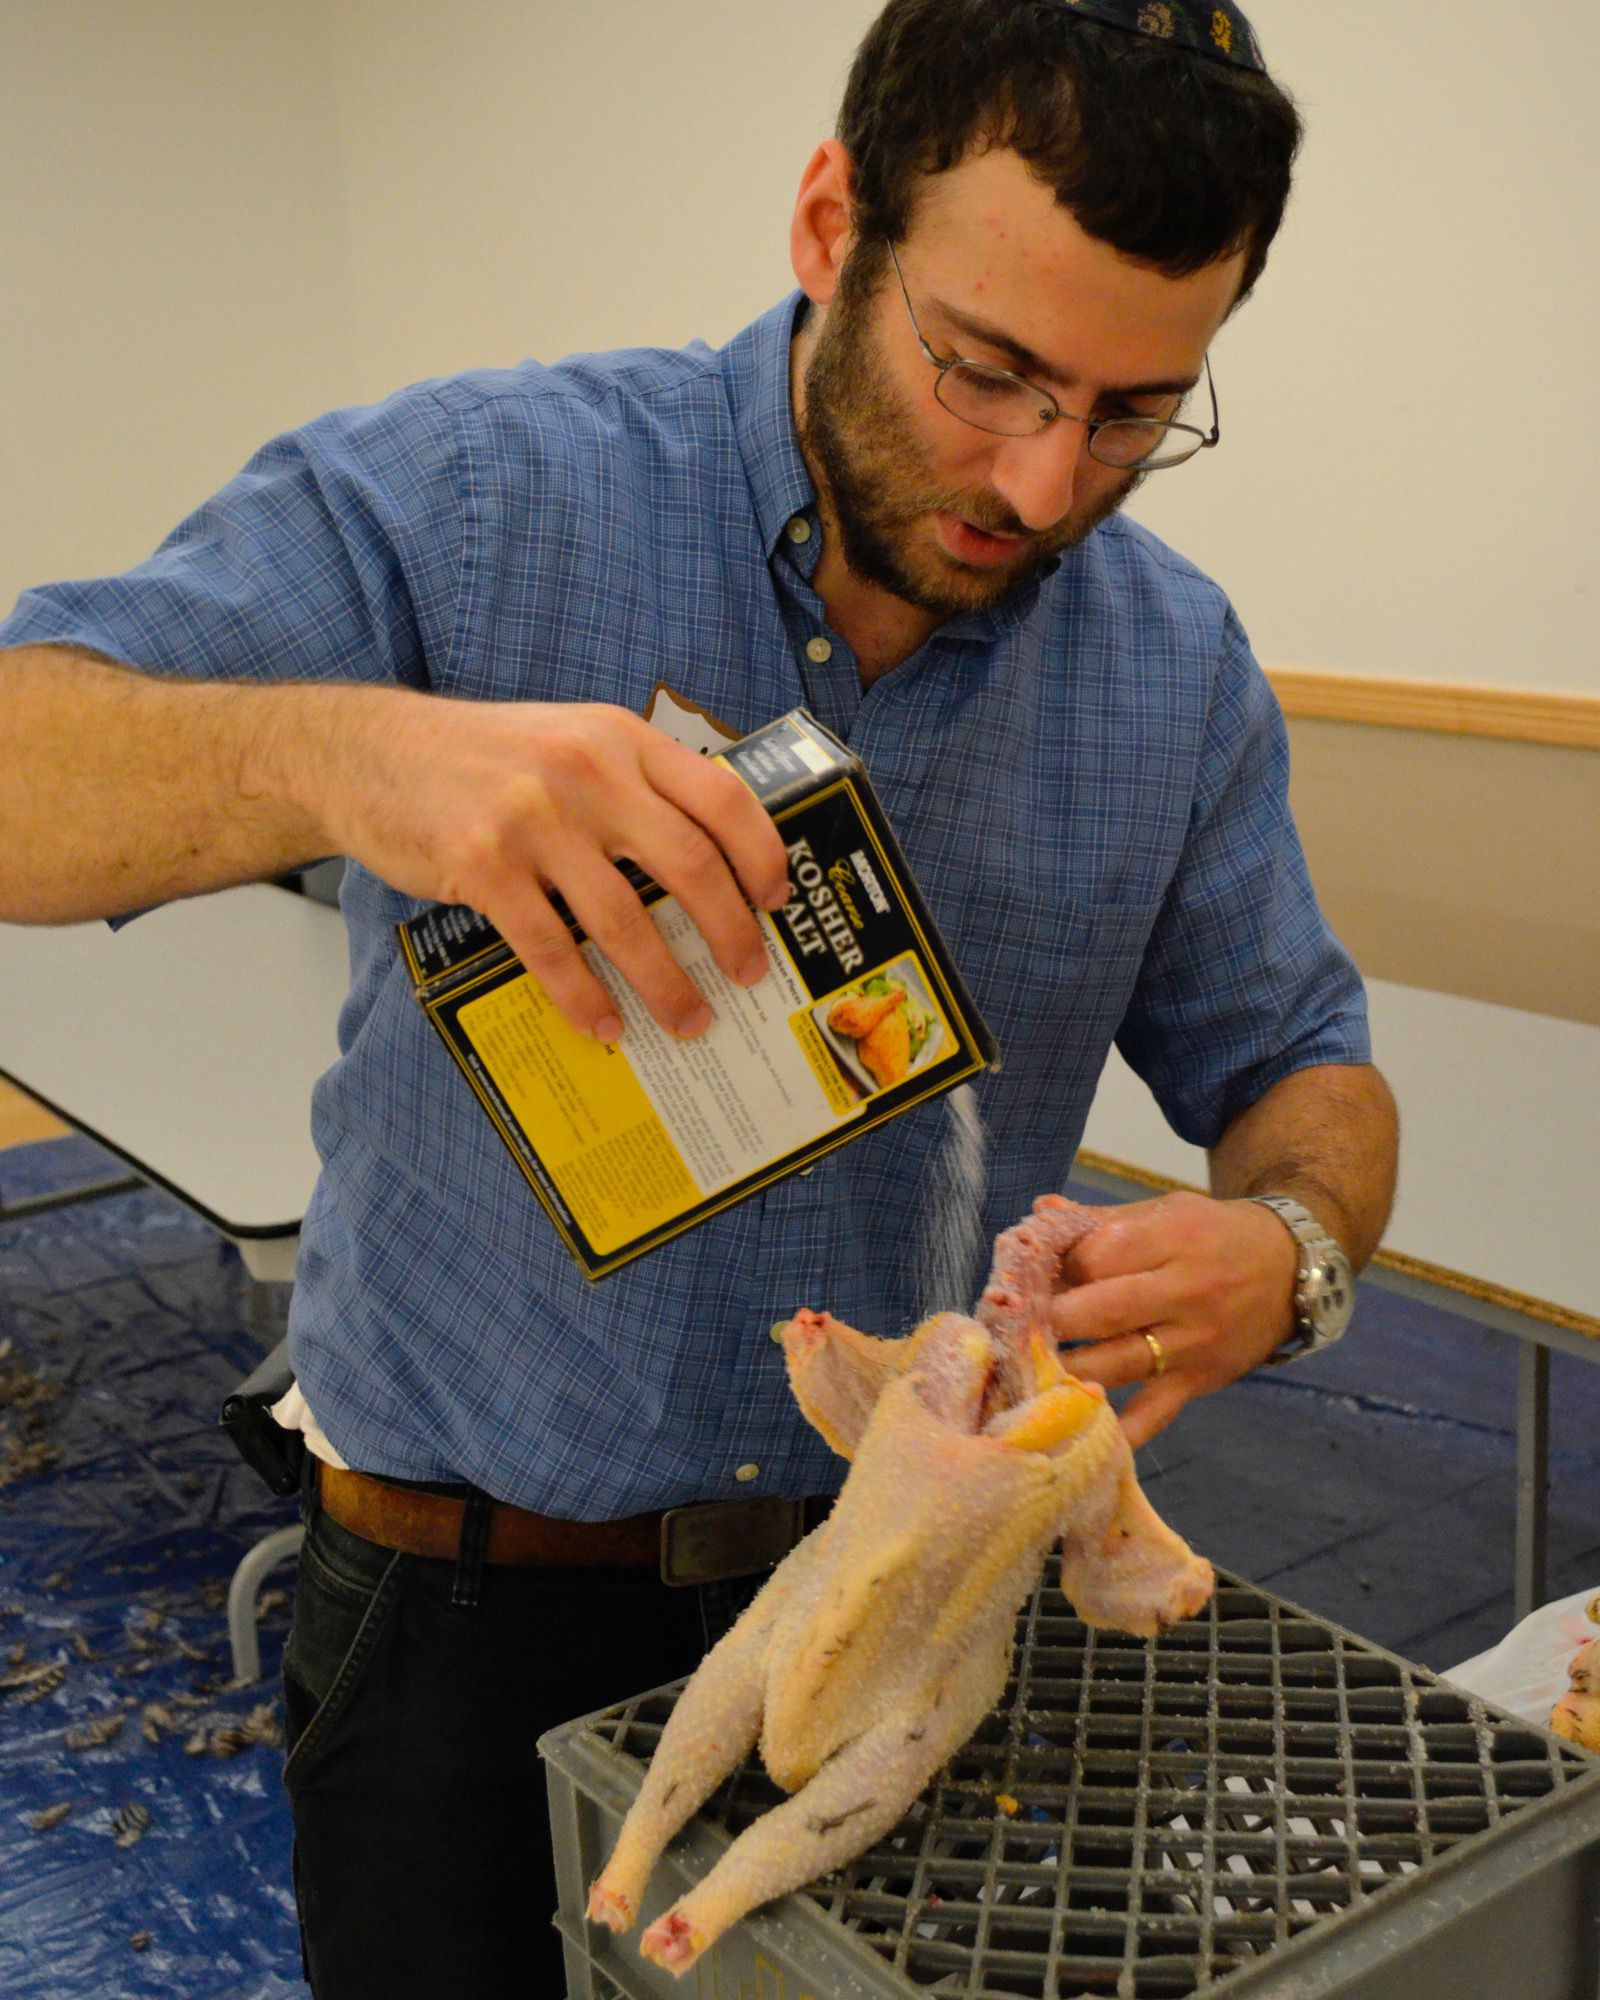 After draining the chicken of blood, Grow and Behold founder and owner Naftali Hanau removes the rest of the blood by coating it in kosher salt.